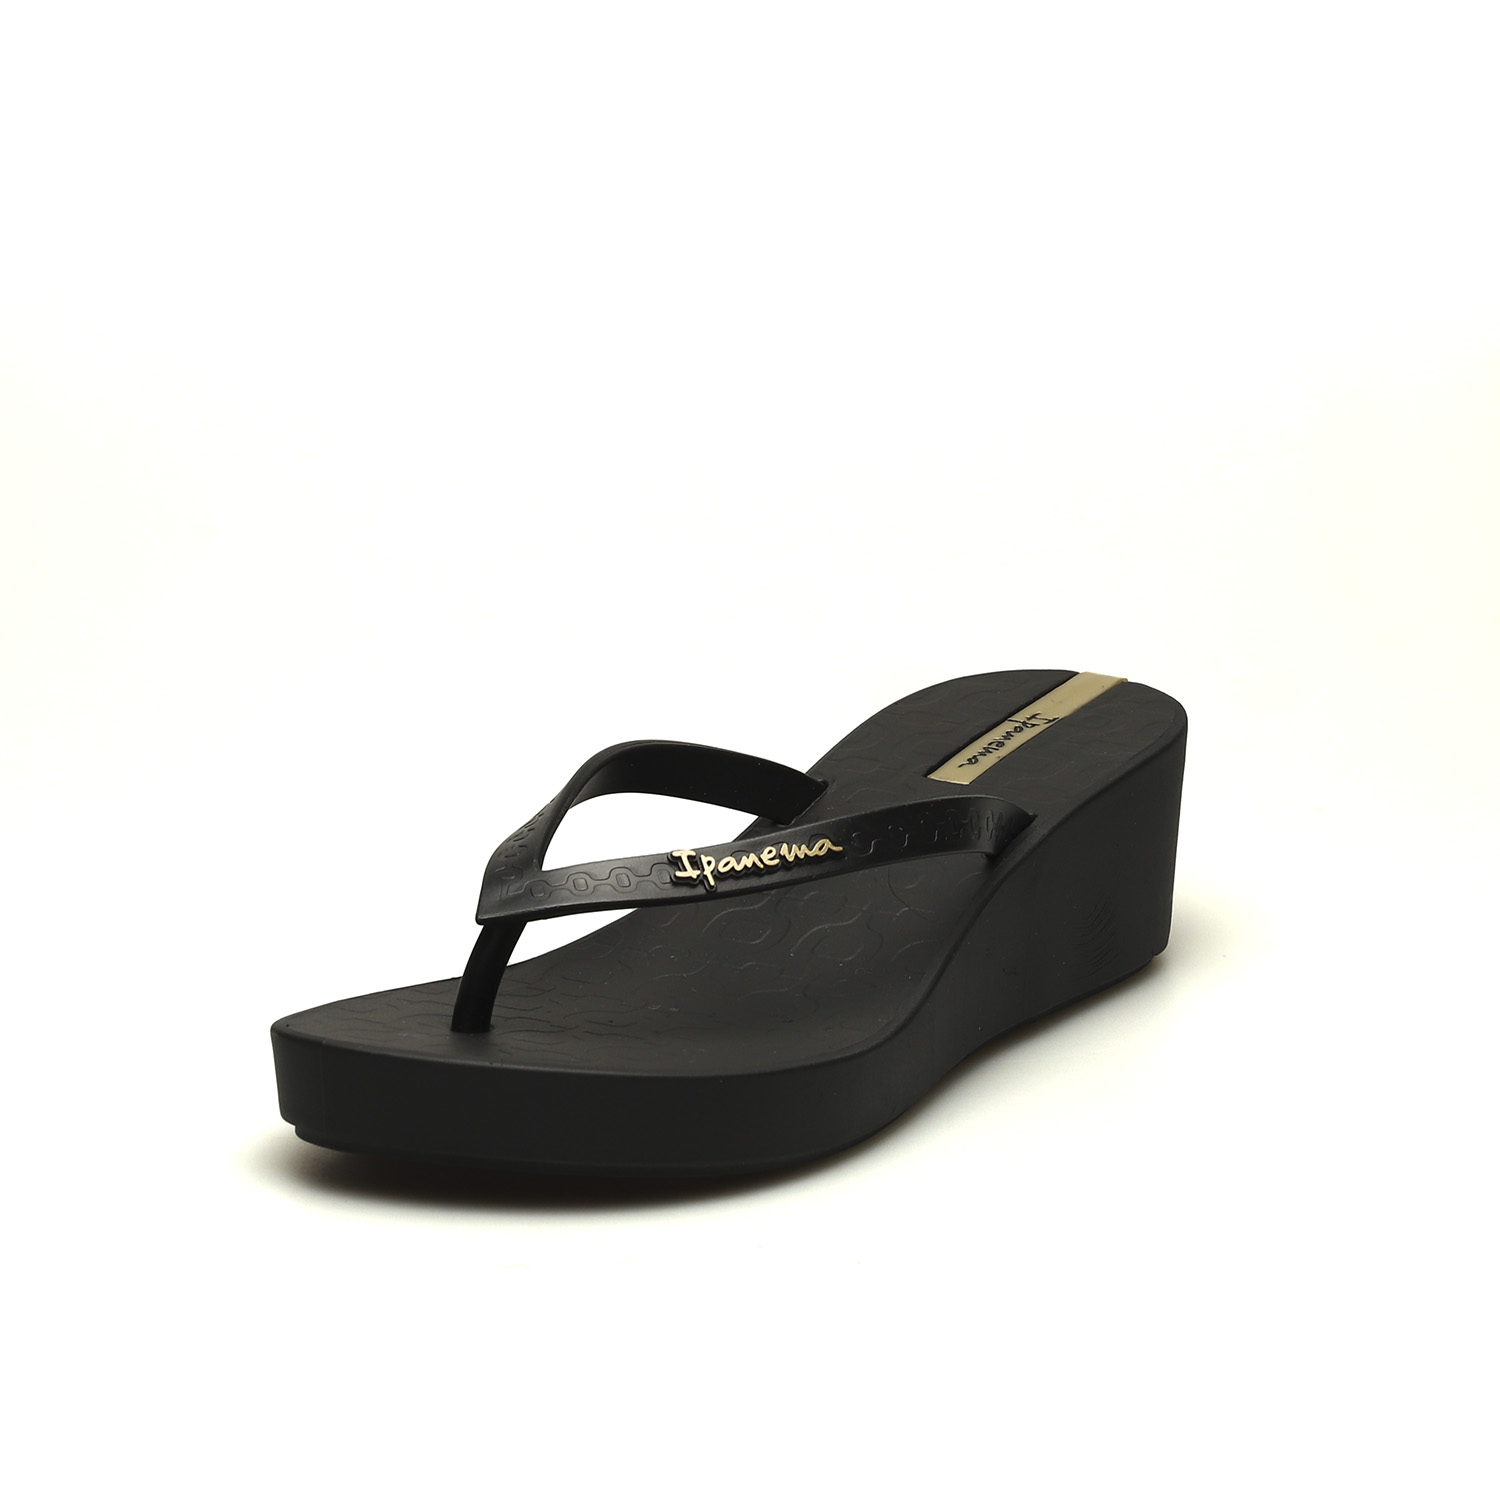 IPANEMA HIGH HEEL BLACK